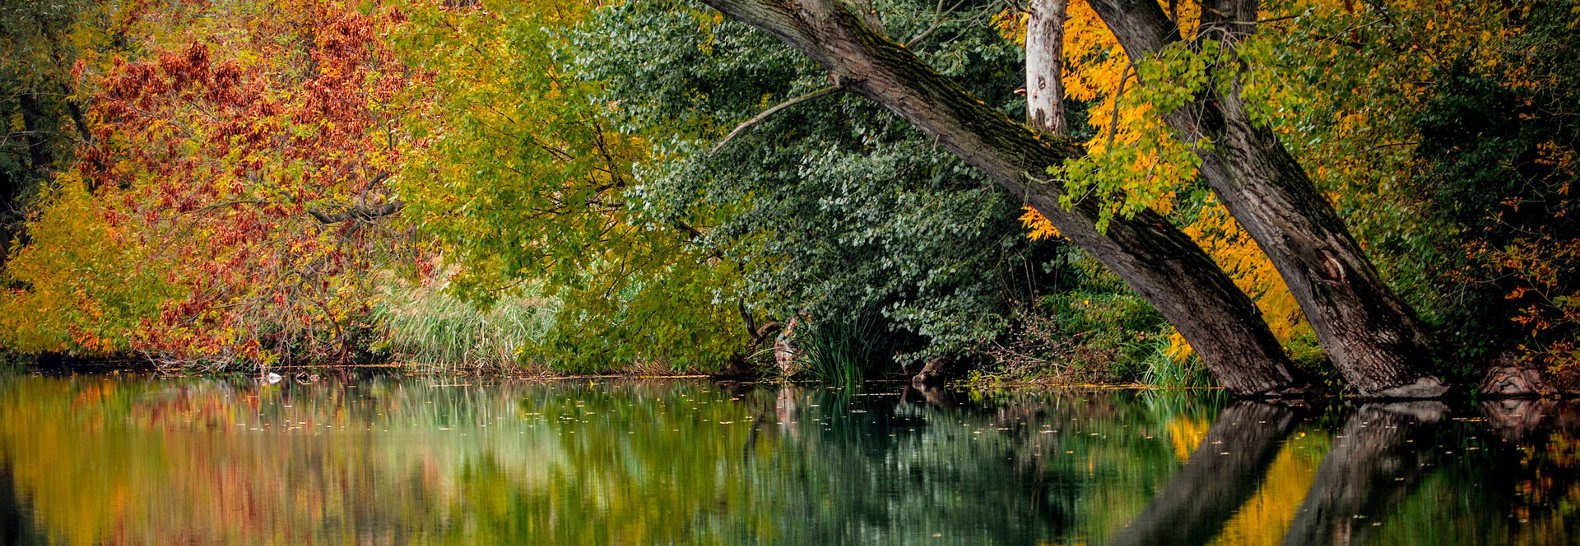 Warmer weather expected to ruin Fall colors | Inhabitat - Green ...